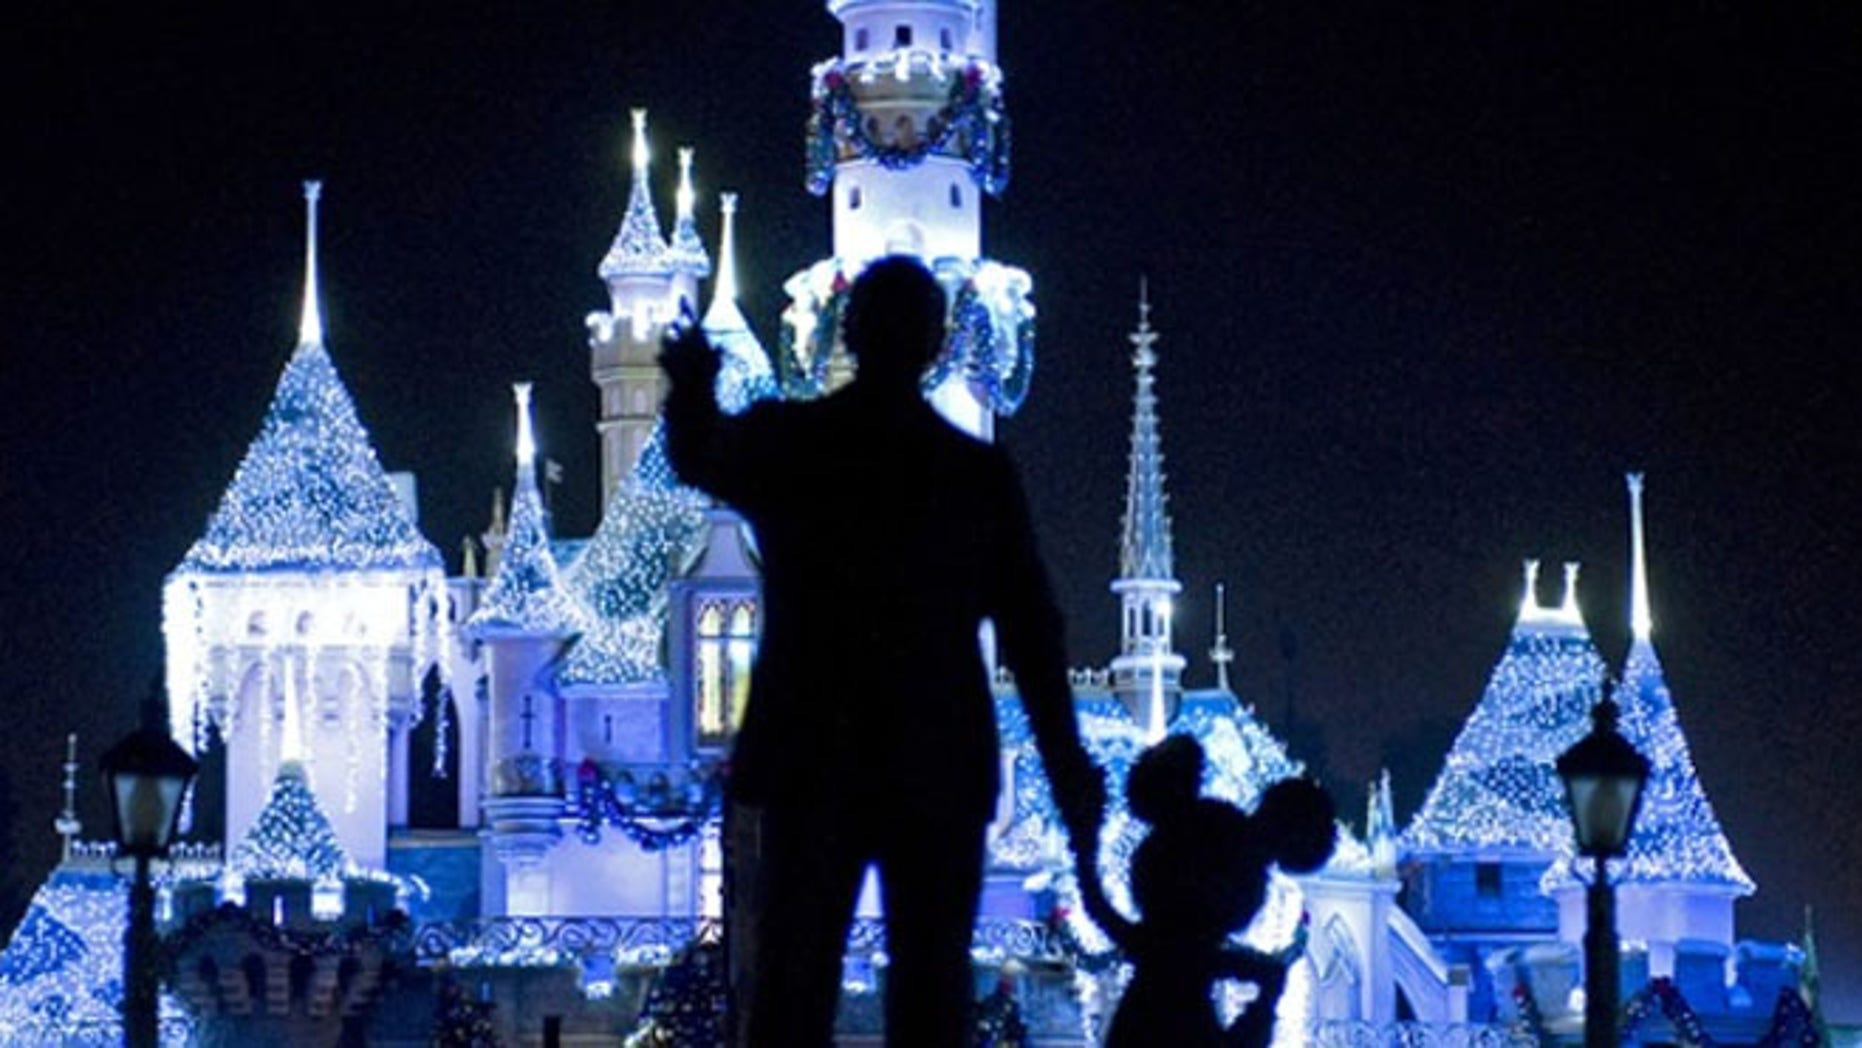 Disney World has told visitors not to bring their selfie sticks on rides.